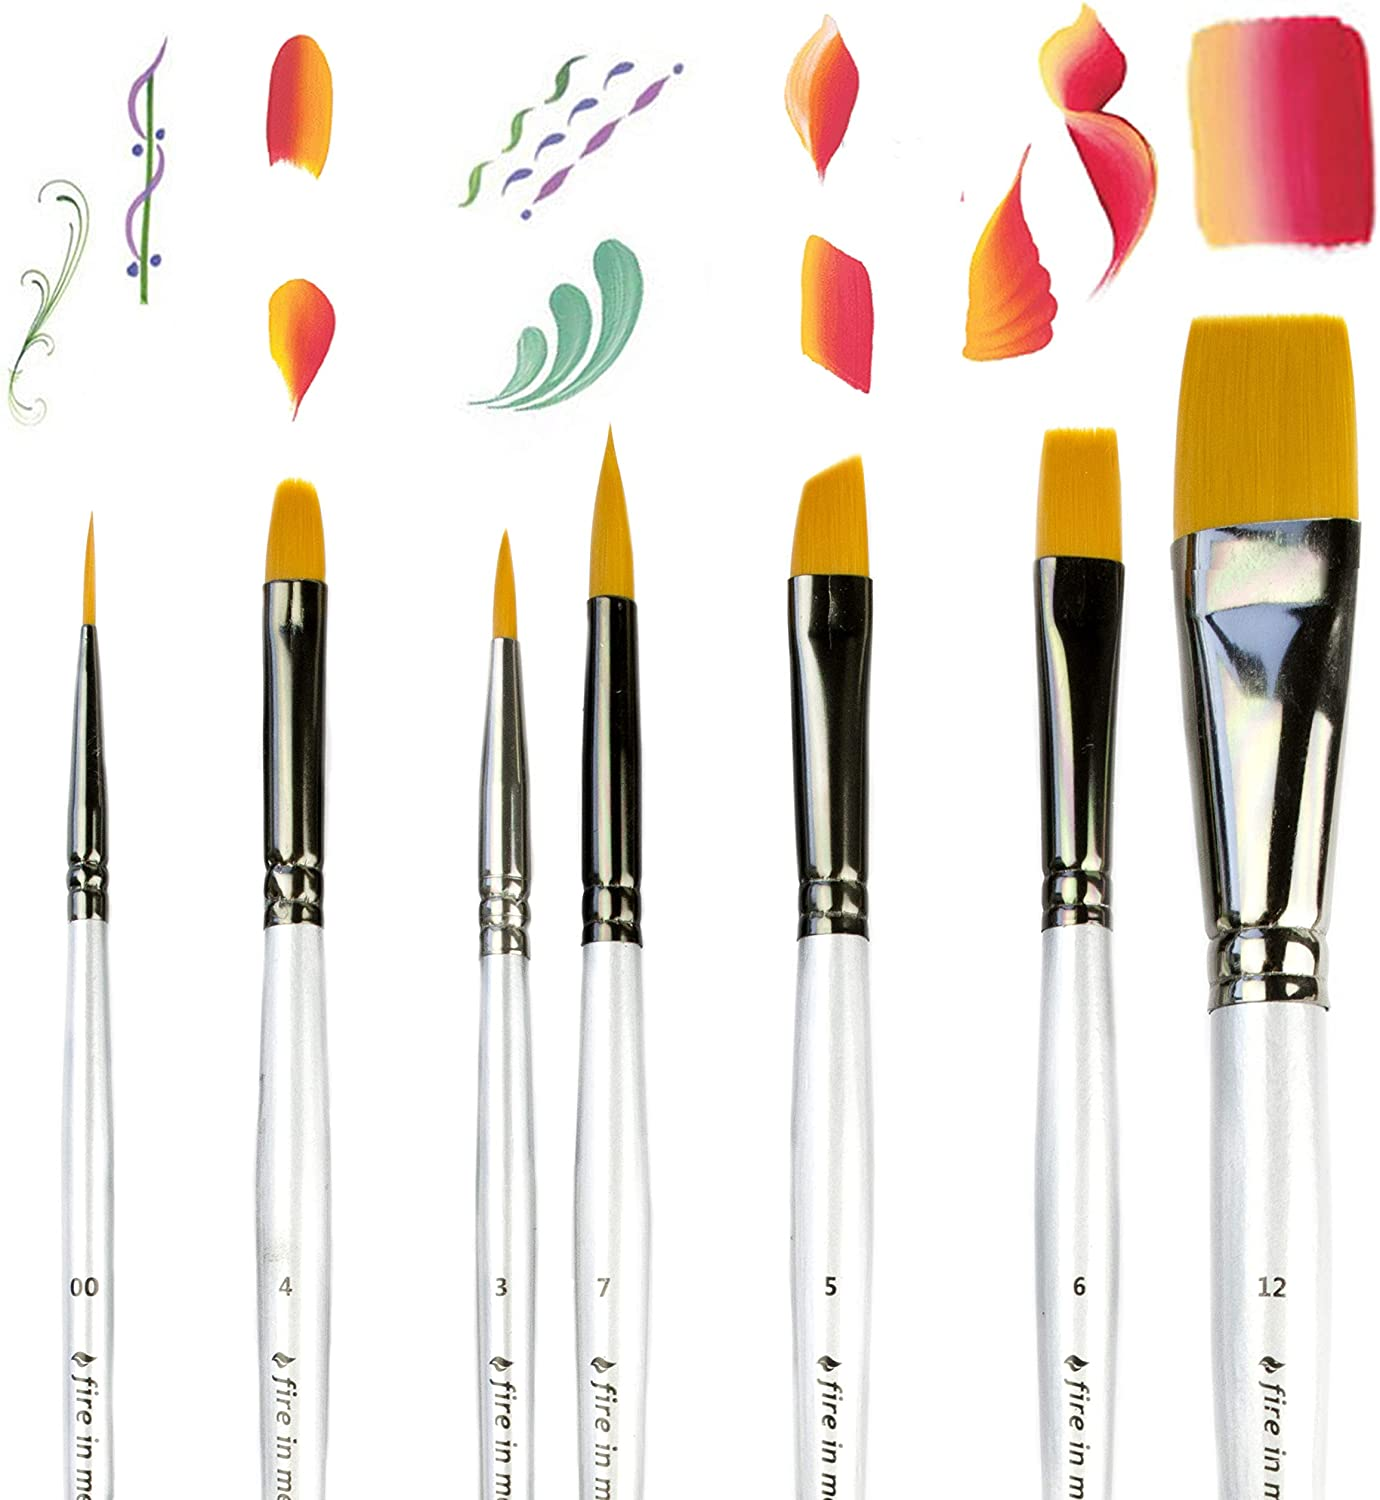 Amazon.com: Art Paint Brushes for Acrylic Painting Watercolor Oil Gouache -  Body and Face Paint Brushes for Adults Kids. Best Artist Paint Brush Set of  7 pcs, Acrylic Paint Brushes for Painting,